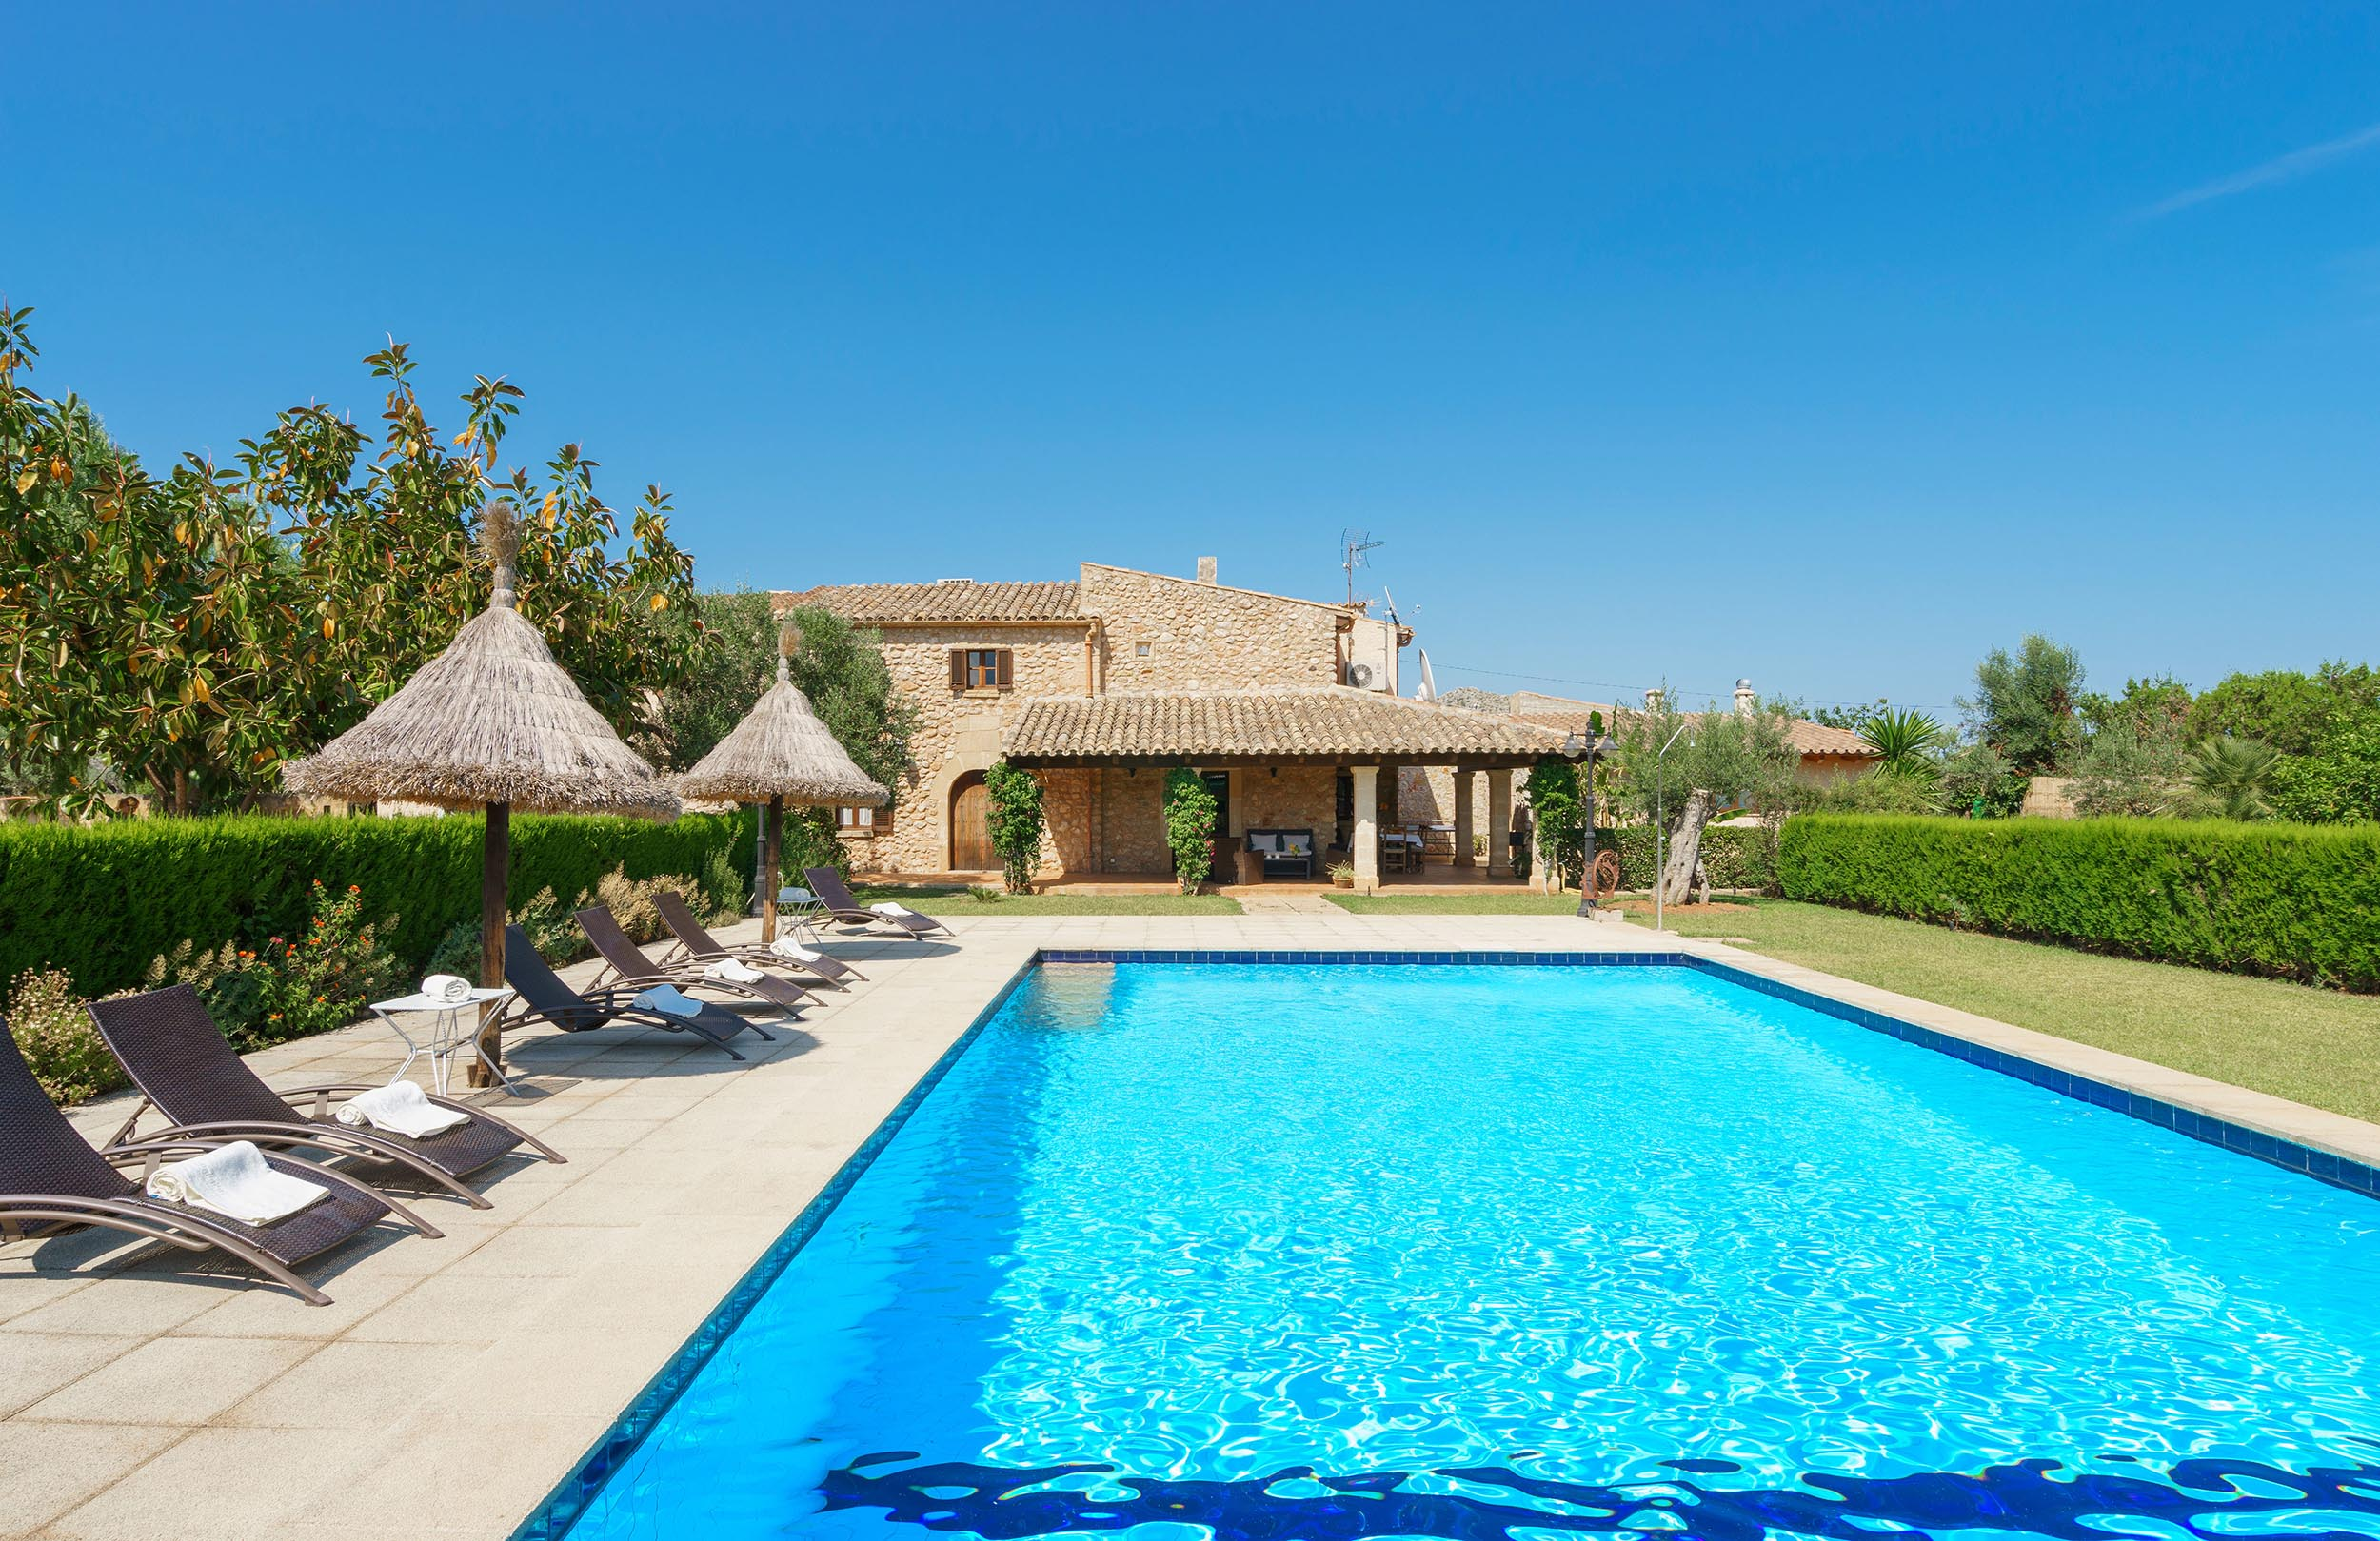 welcome villas de pollensa - mallorca luxury villas and fincas